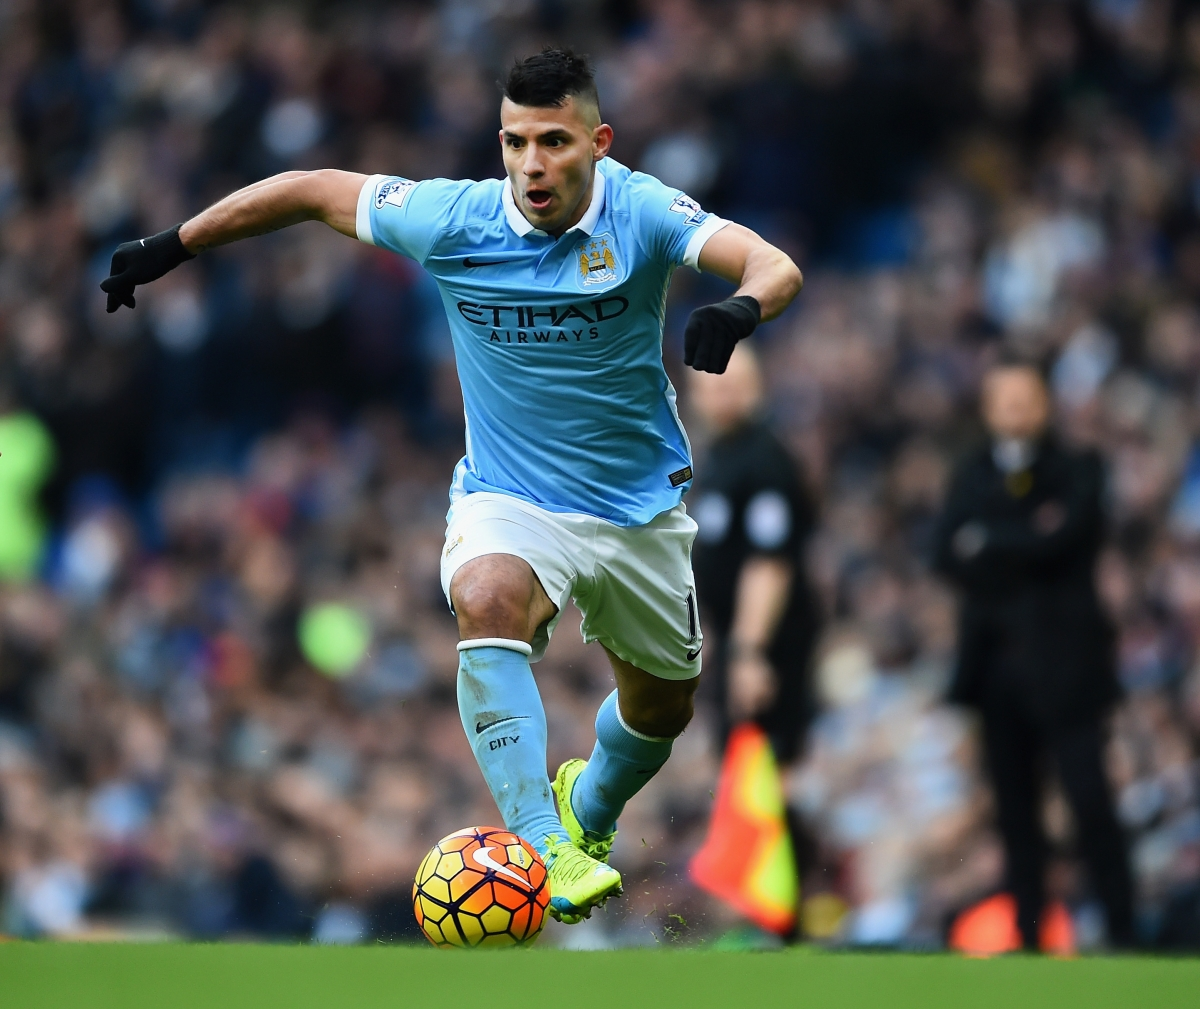 Sergio Aguero will walk away from Manchester City to join Independiente after 2018 World Cup